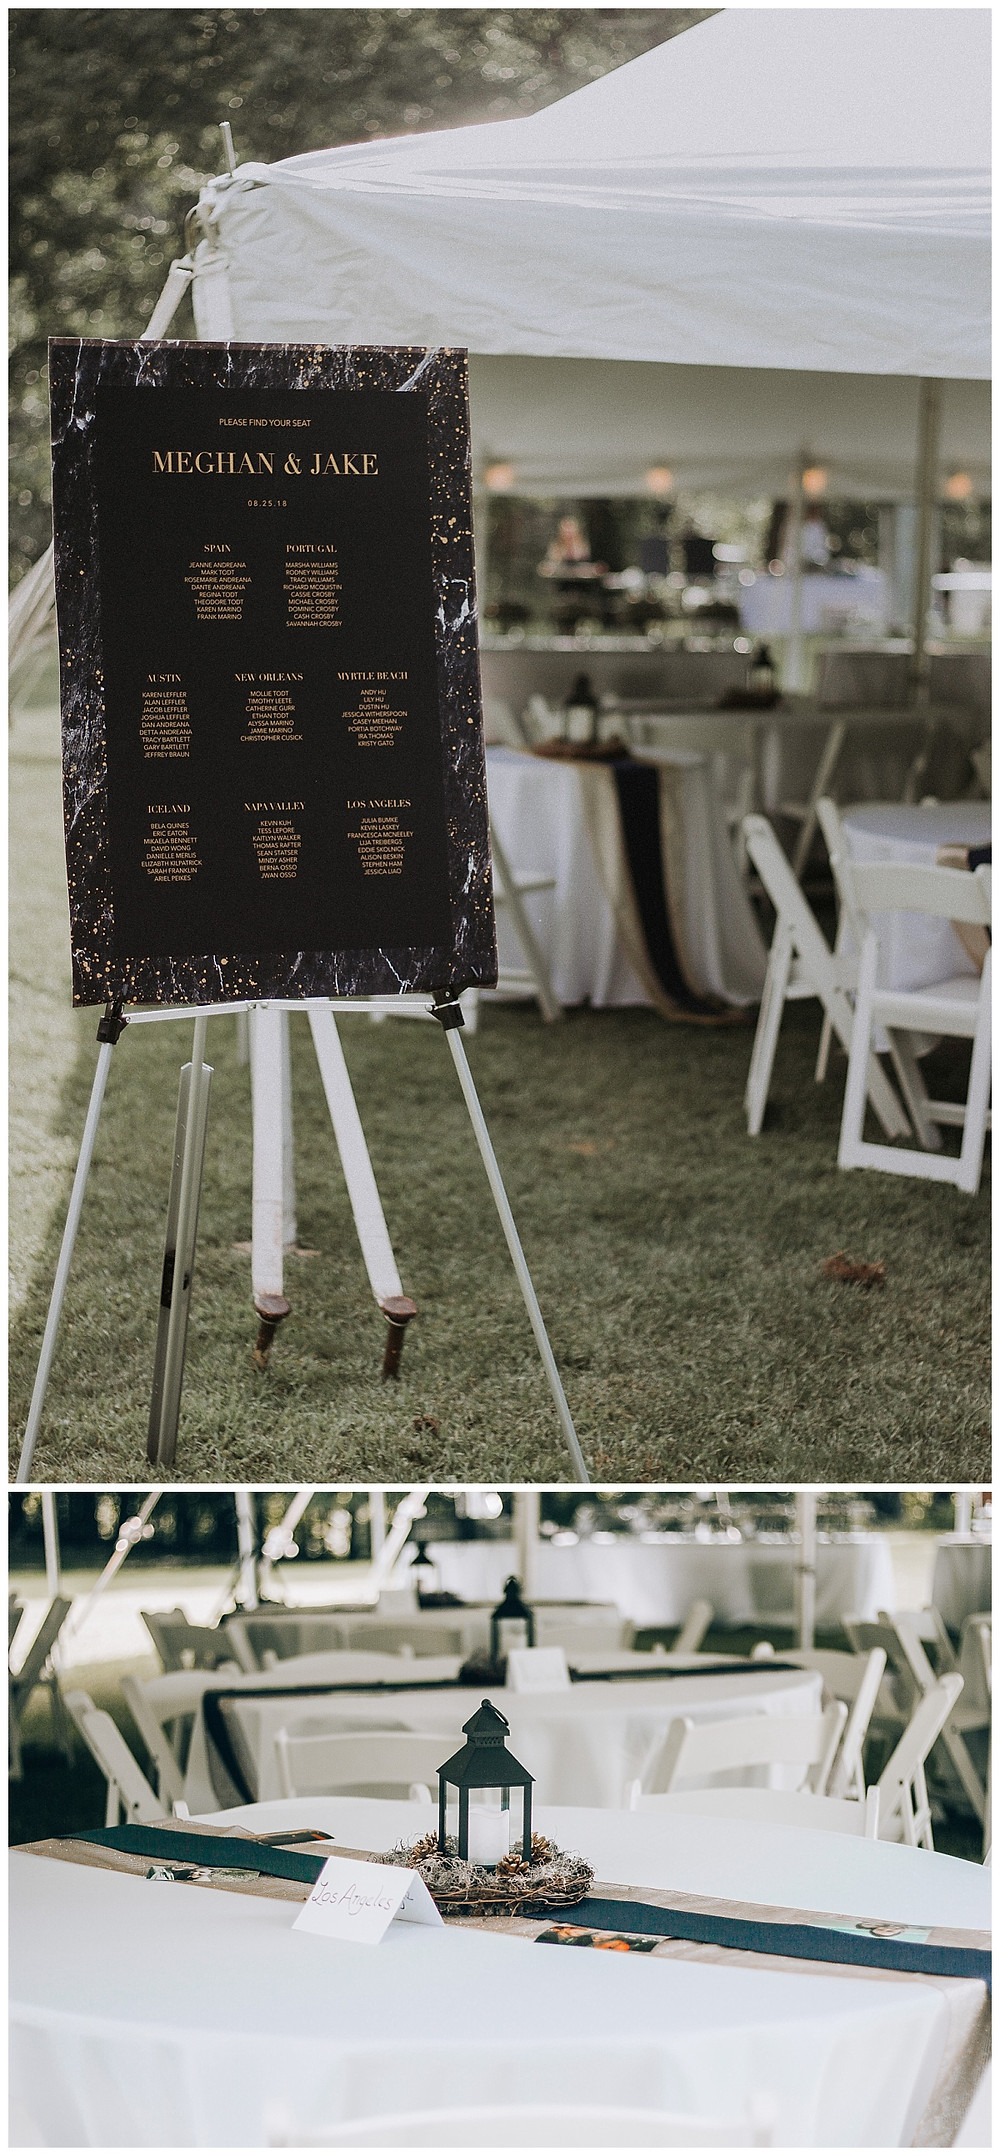 Tented Wedding Welcome Sign and Table Settings